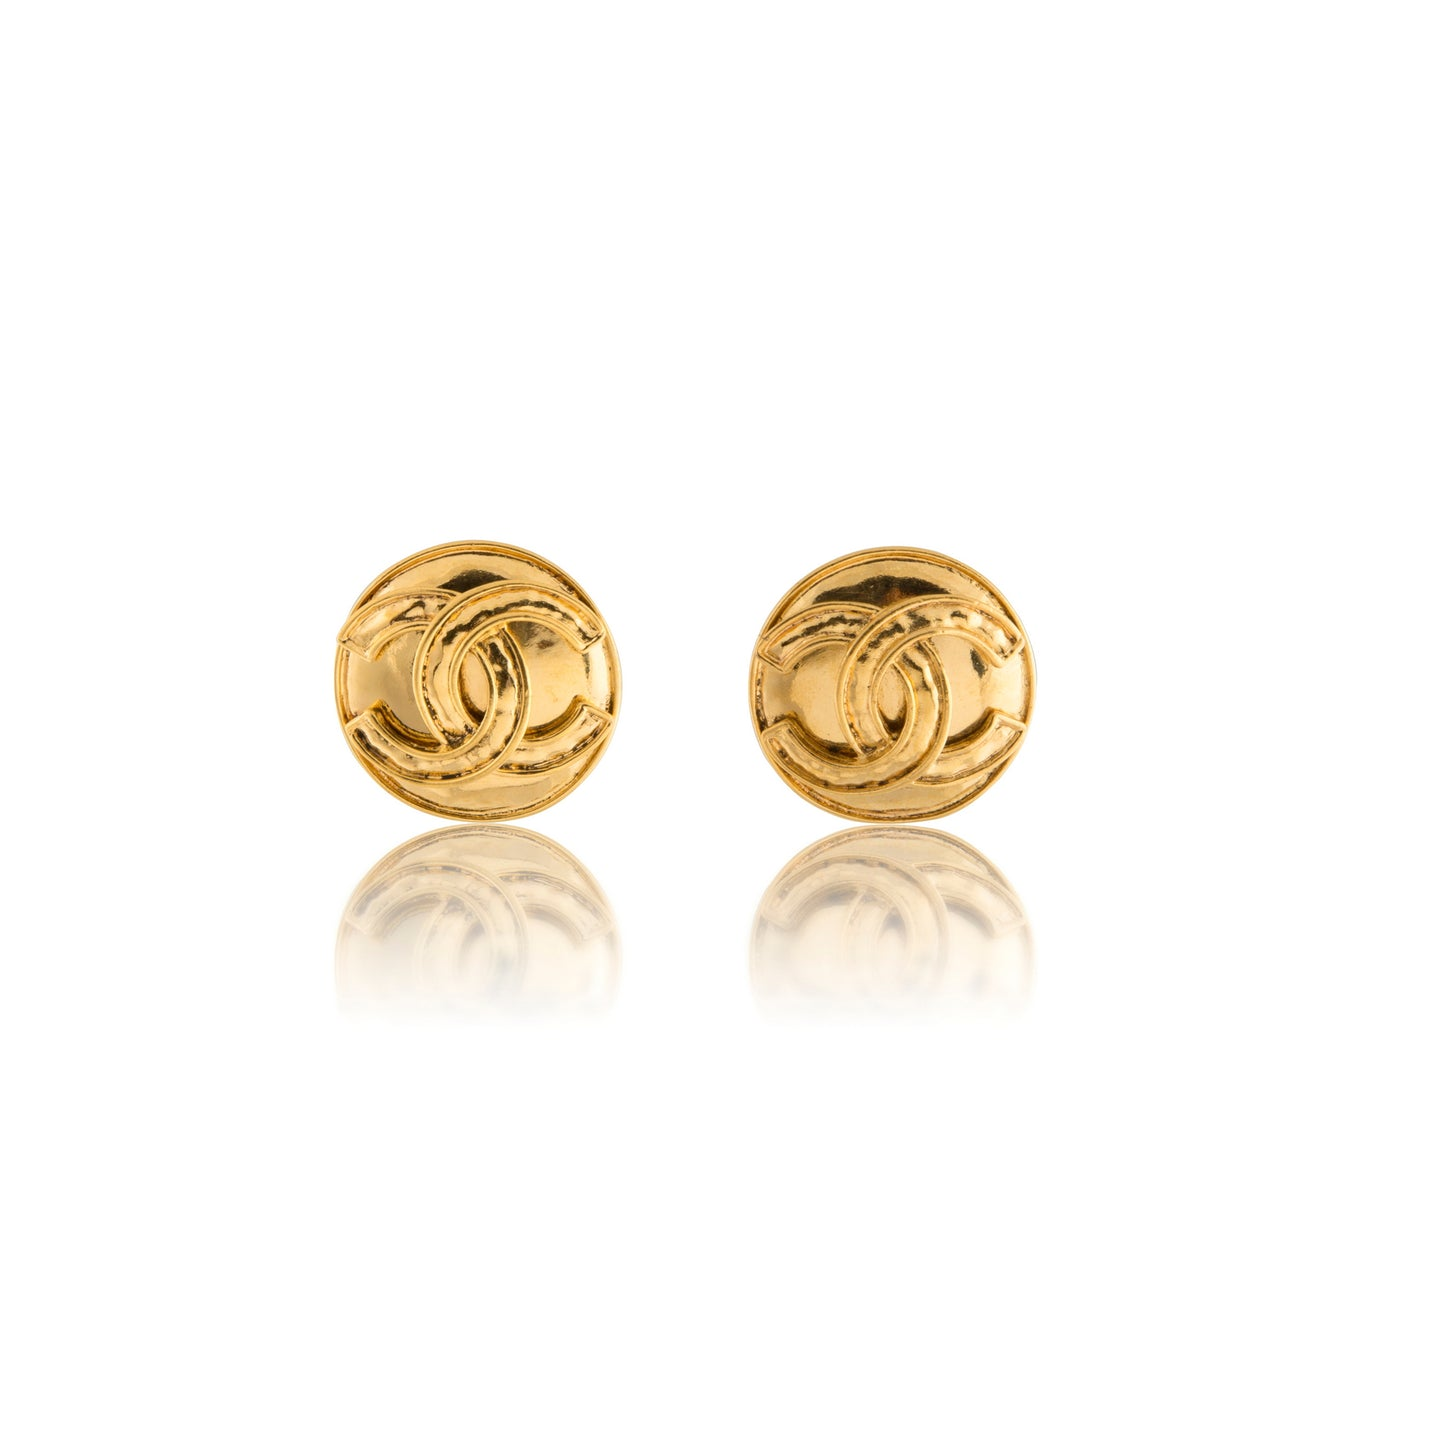 Vintage Chanel Hammered Gold CC Earrings